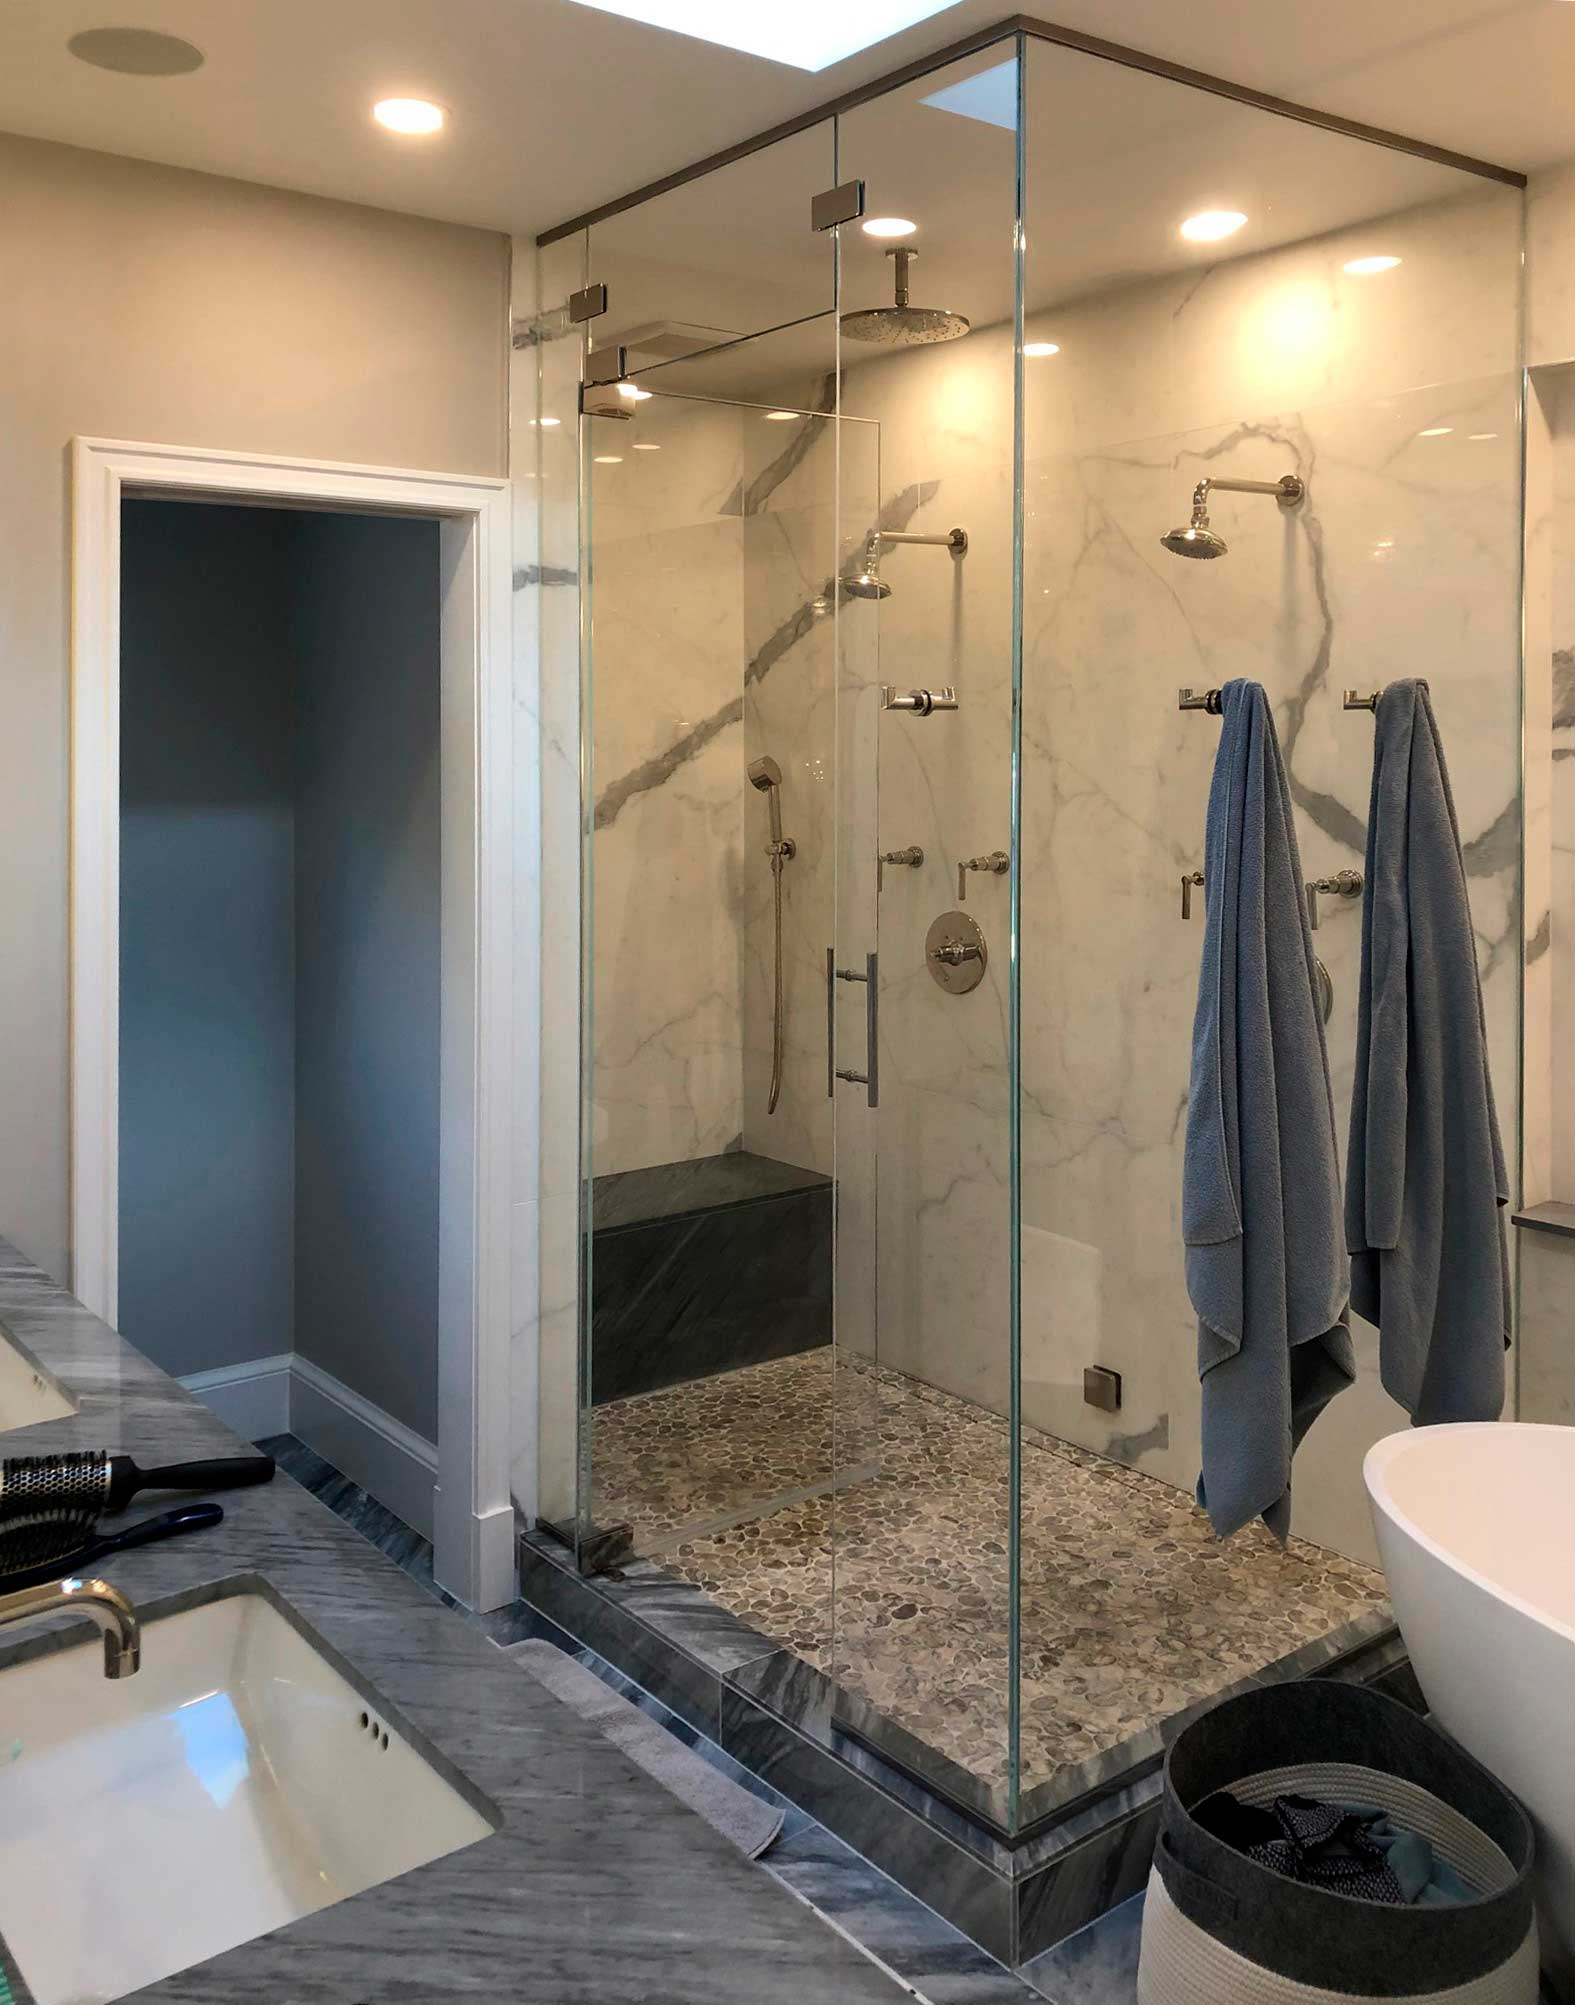 Double shower added to master suite